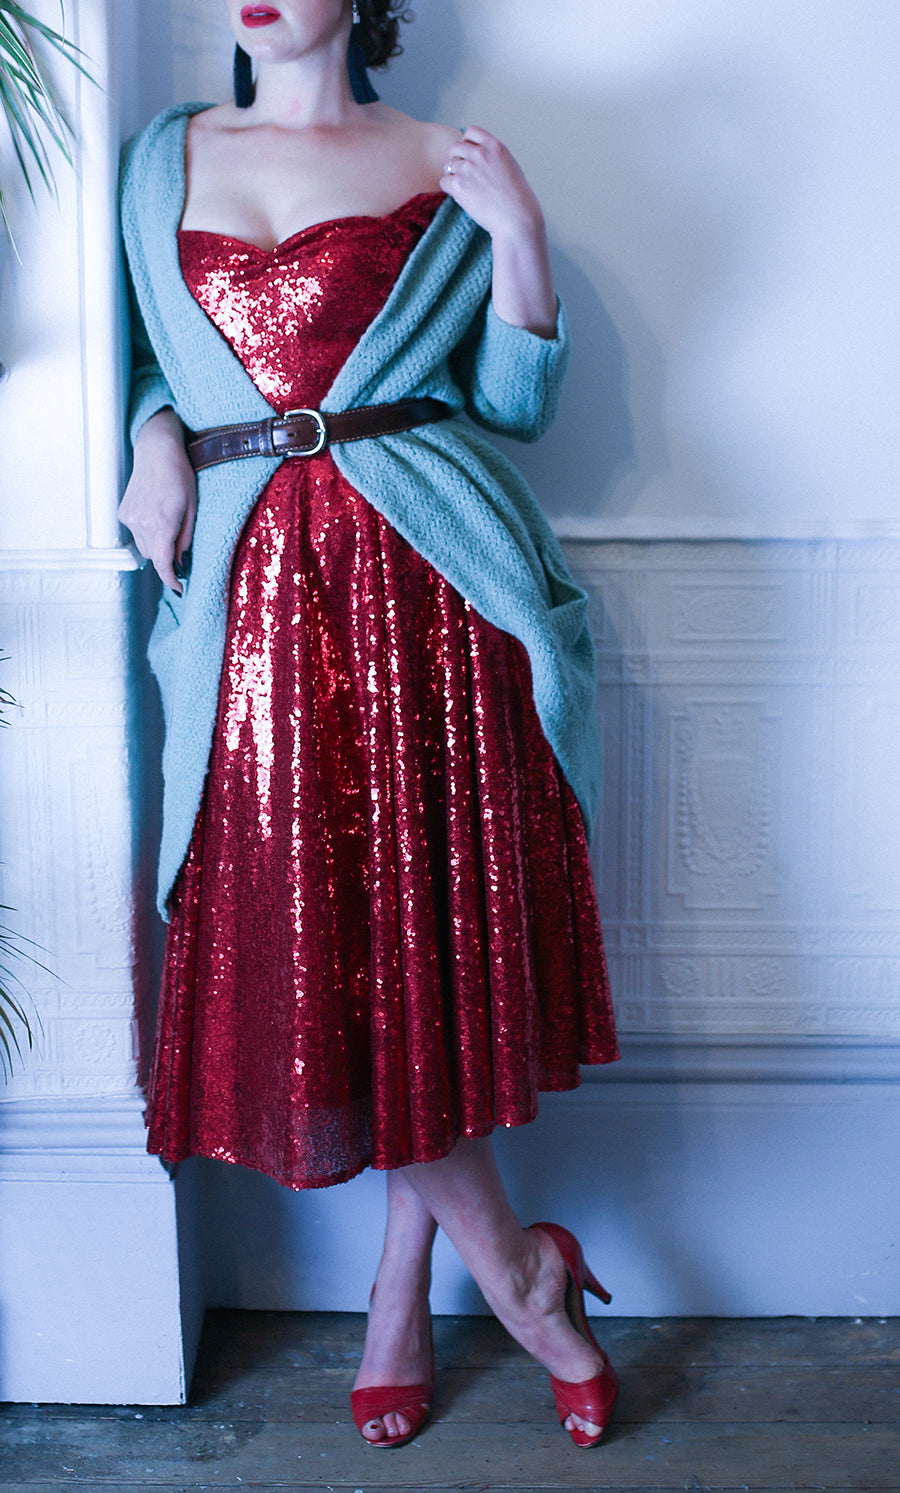 red sequin scarlett dress alexandra king x deadly is the female